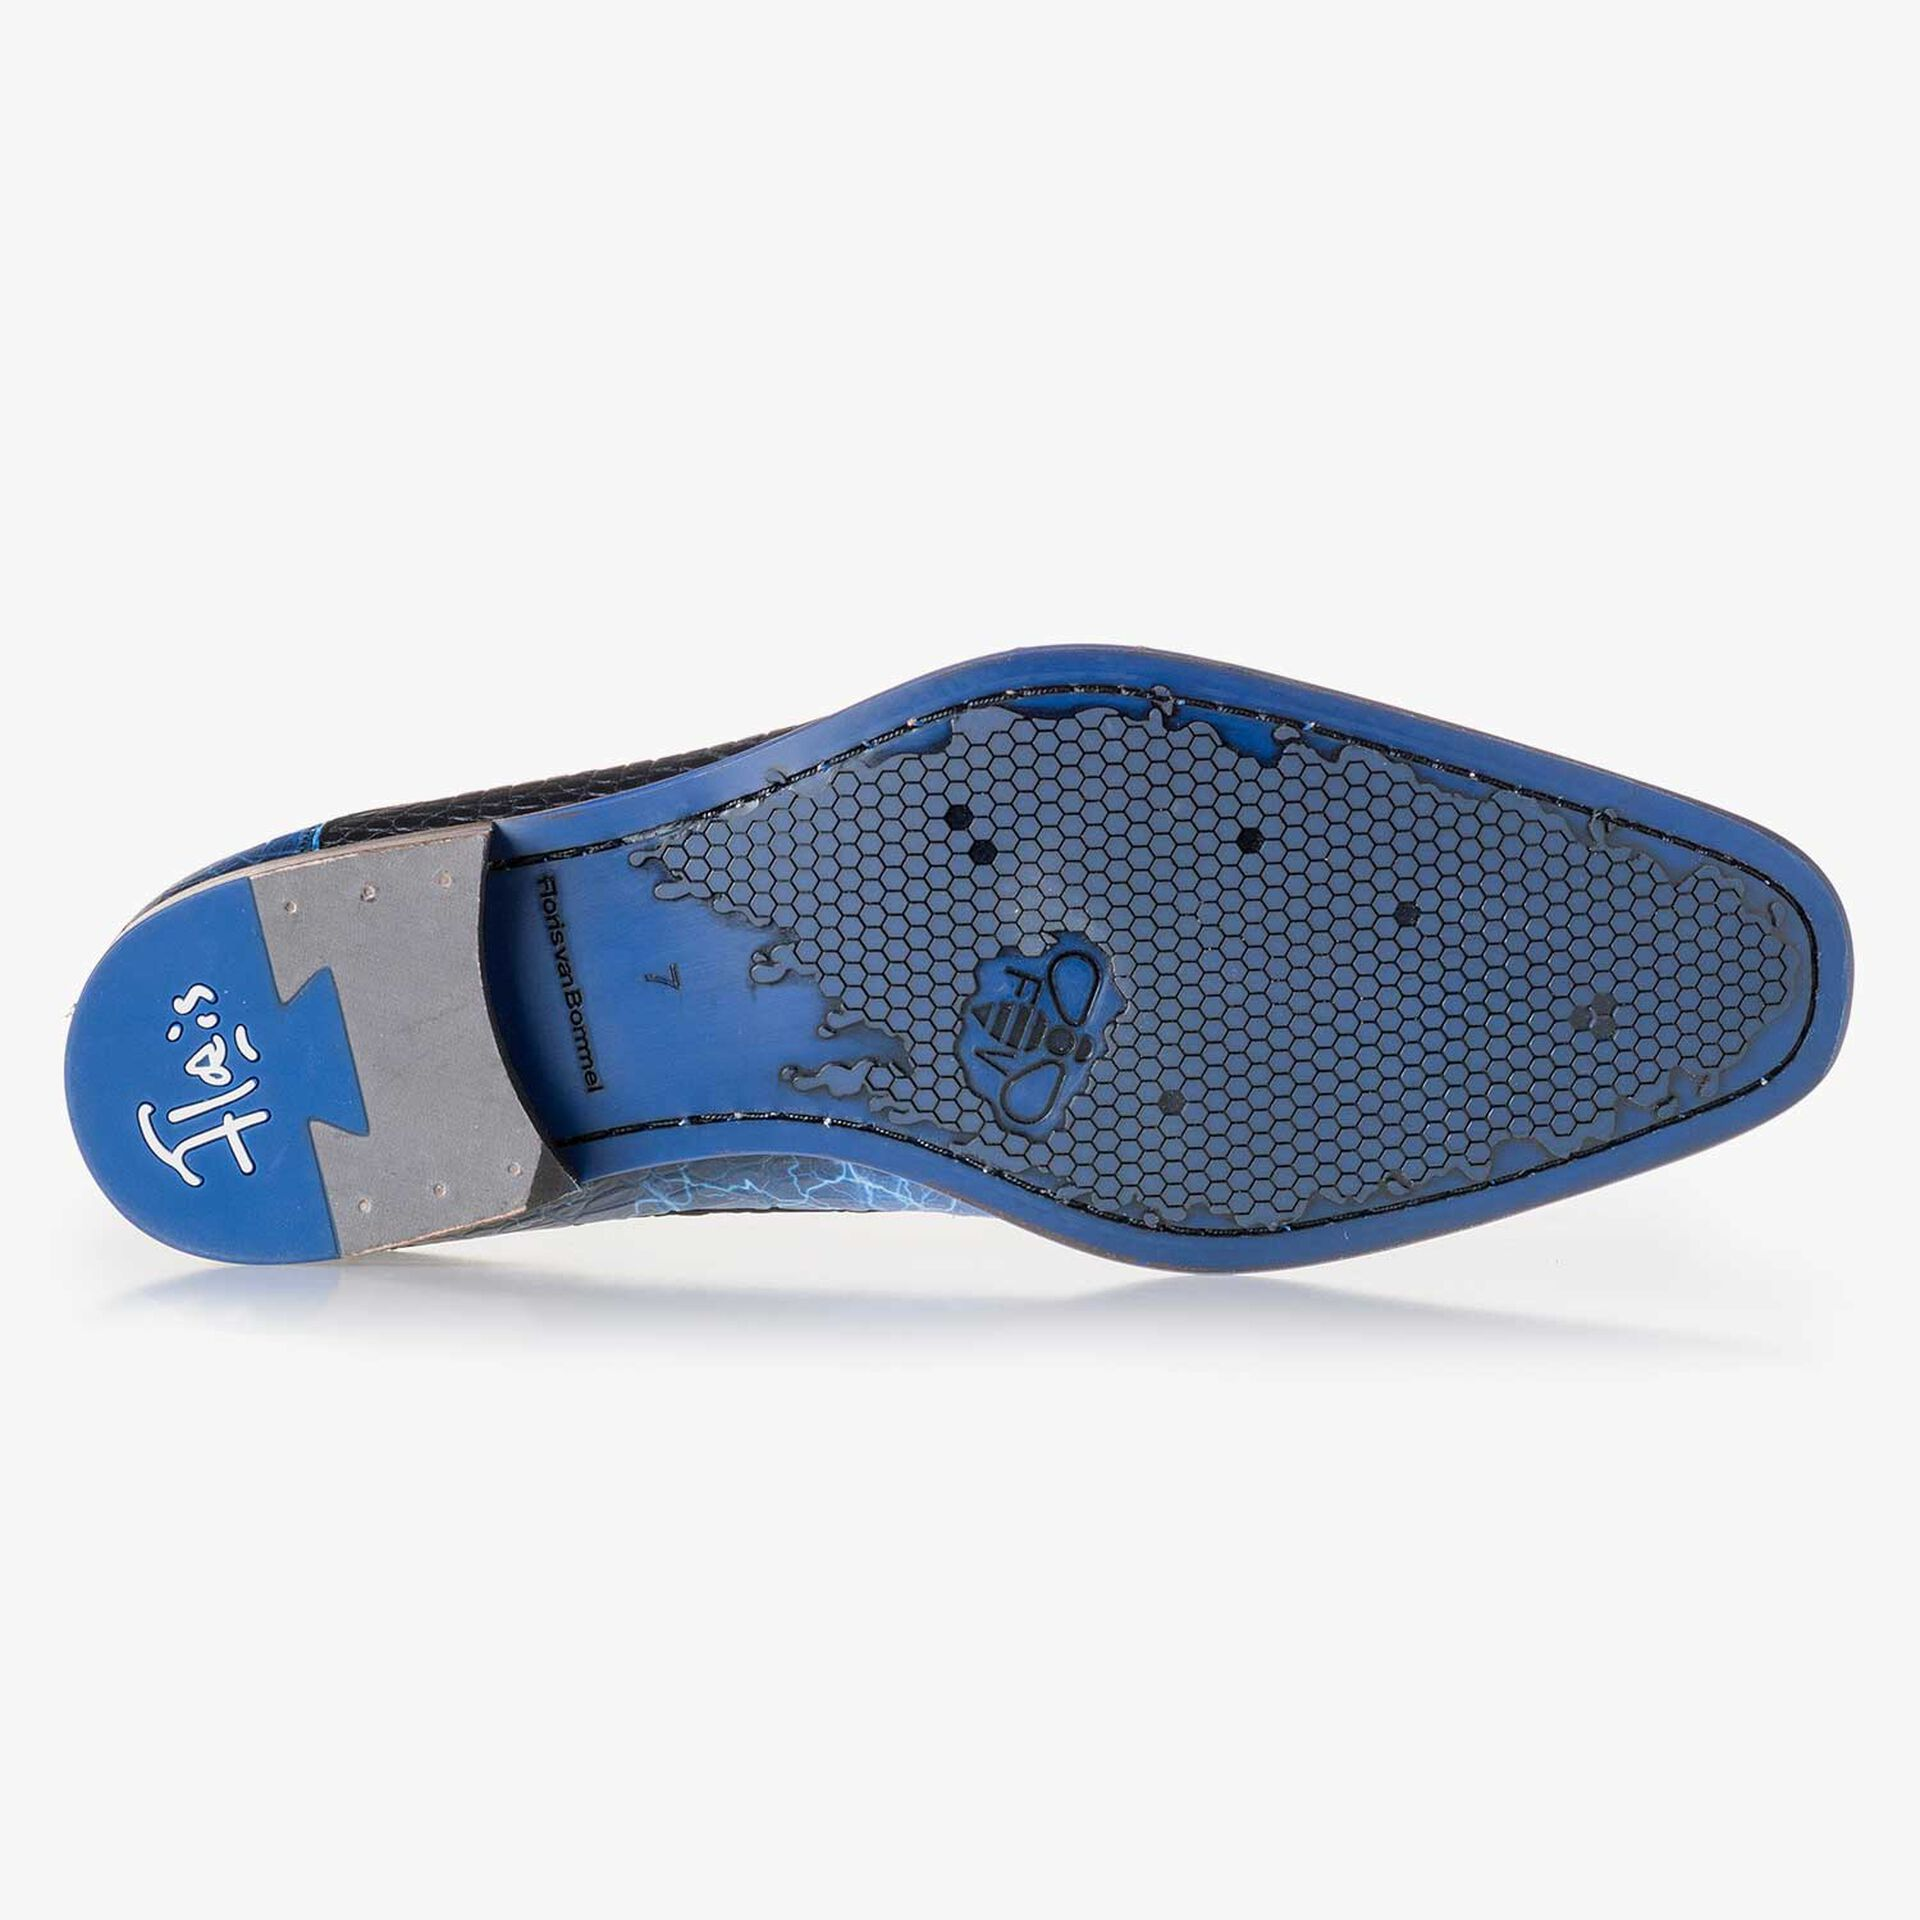 Premium blue printed leather lace shoe